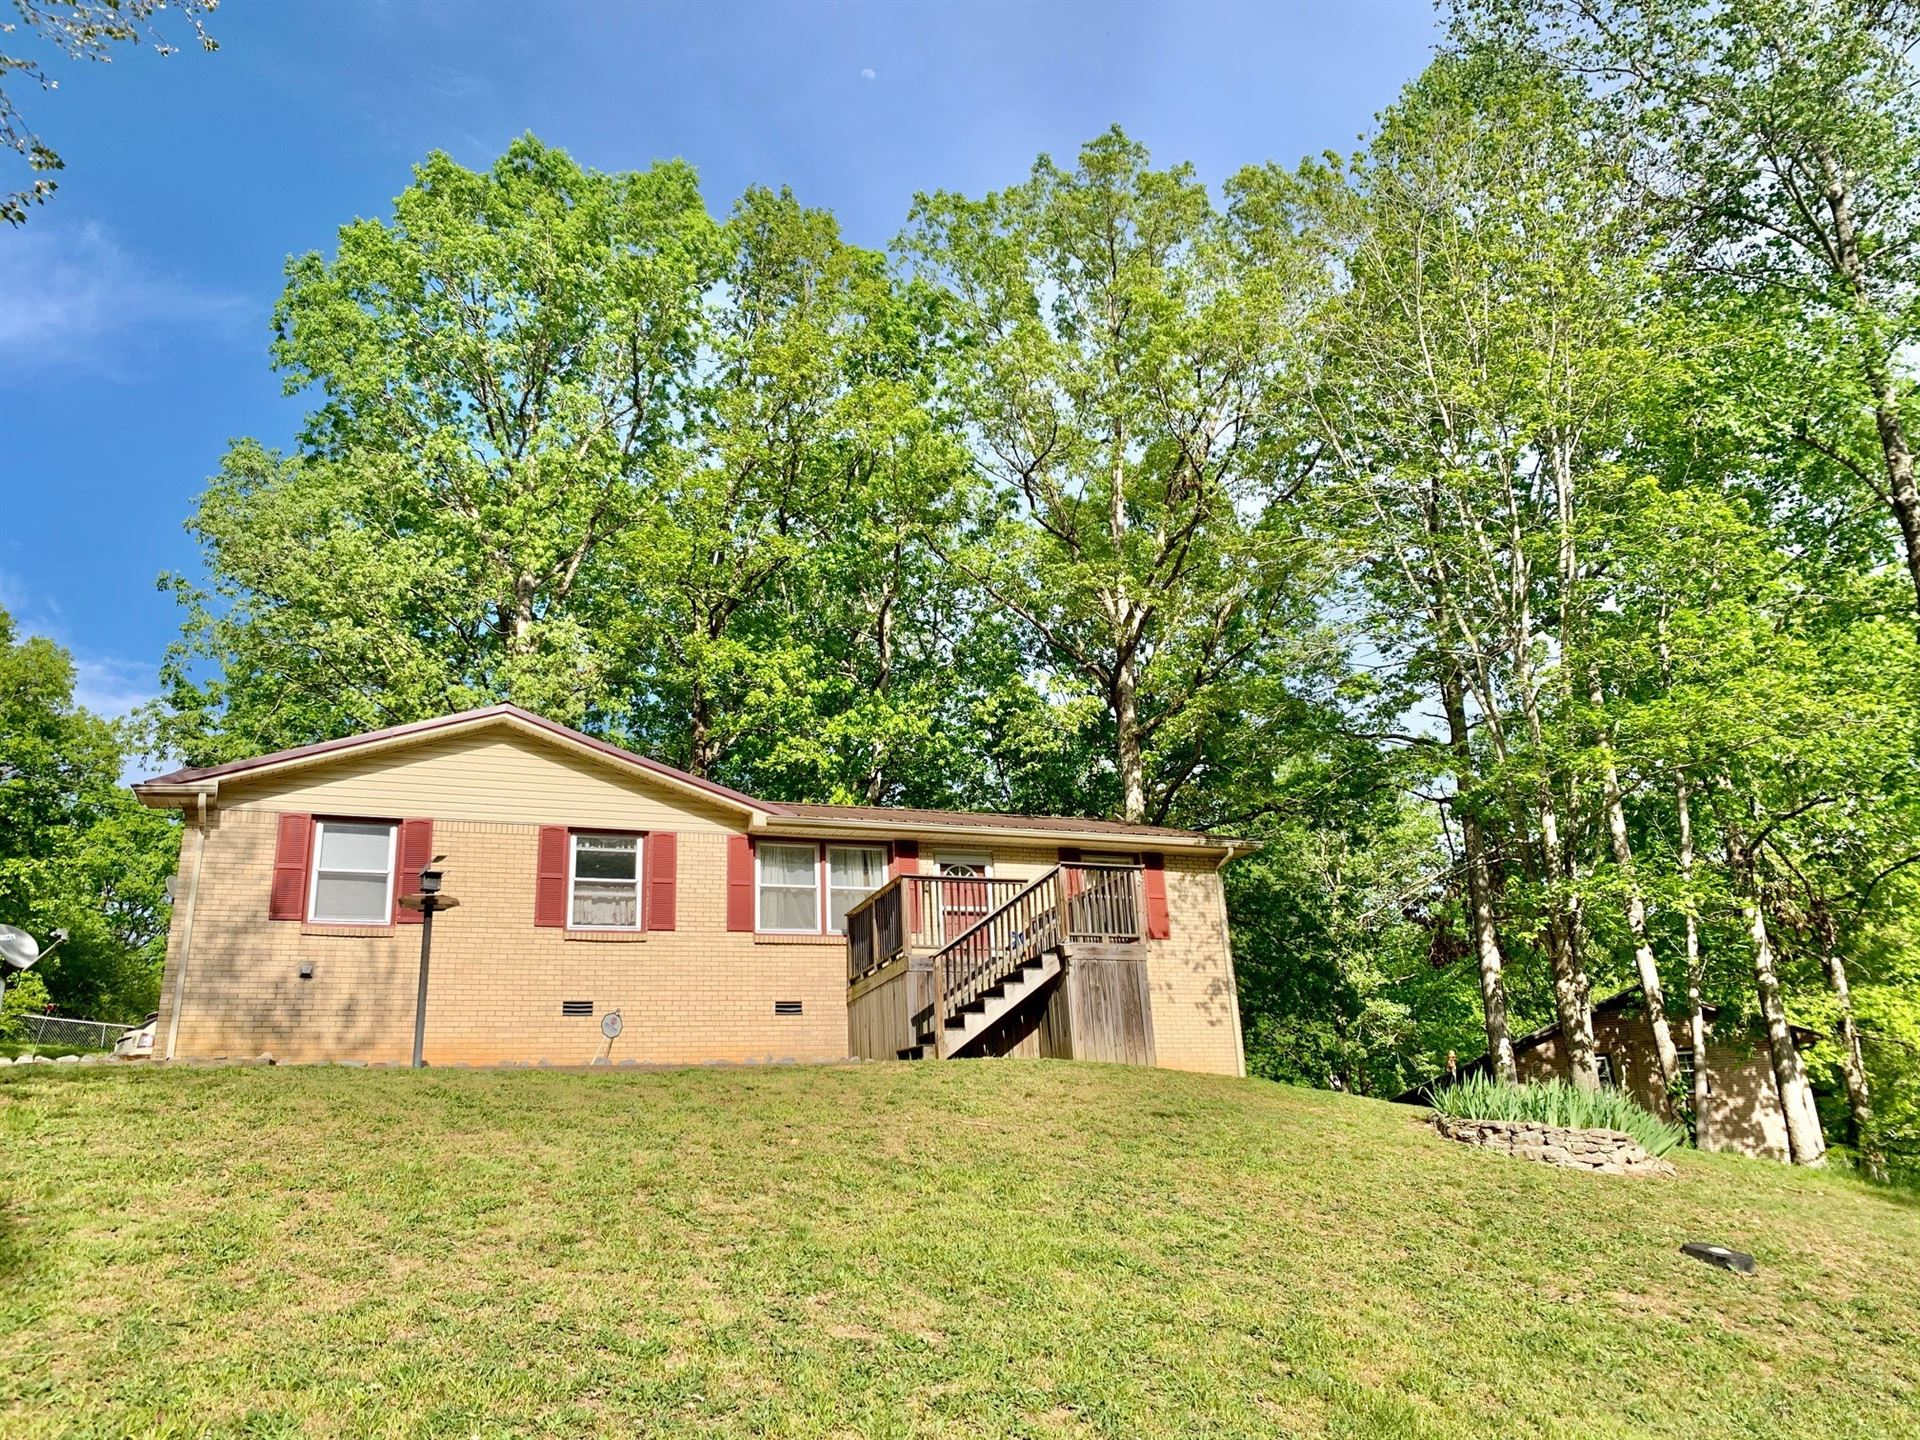 111 Bern St, Waverly, TN 37185 - MLS#: 2121150